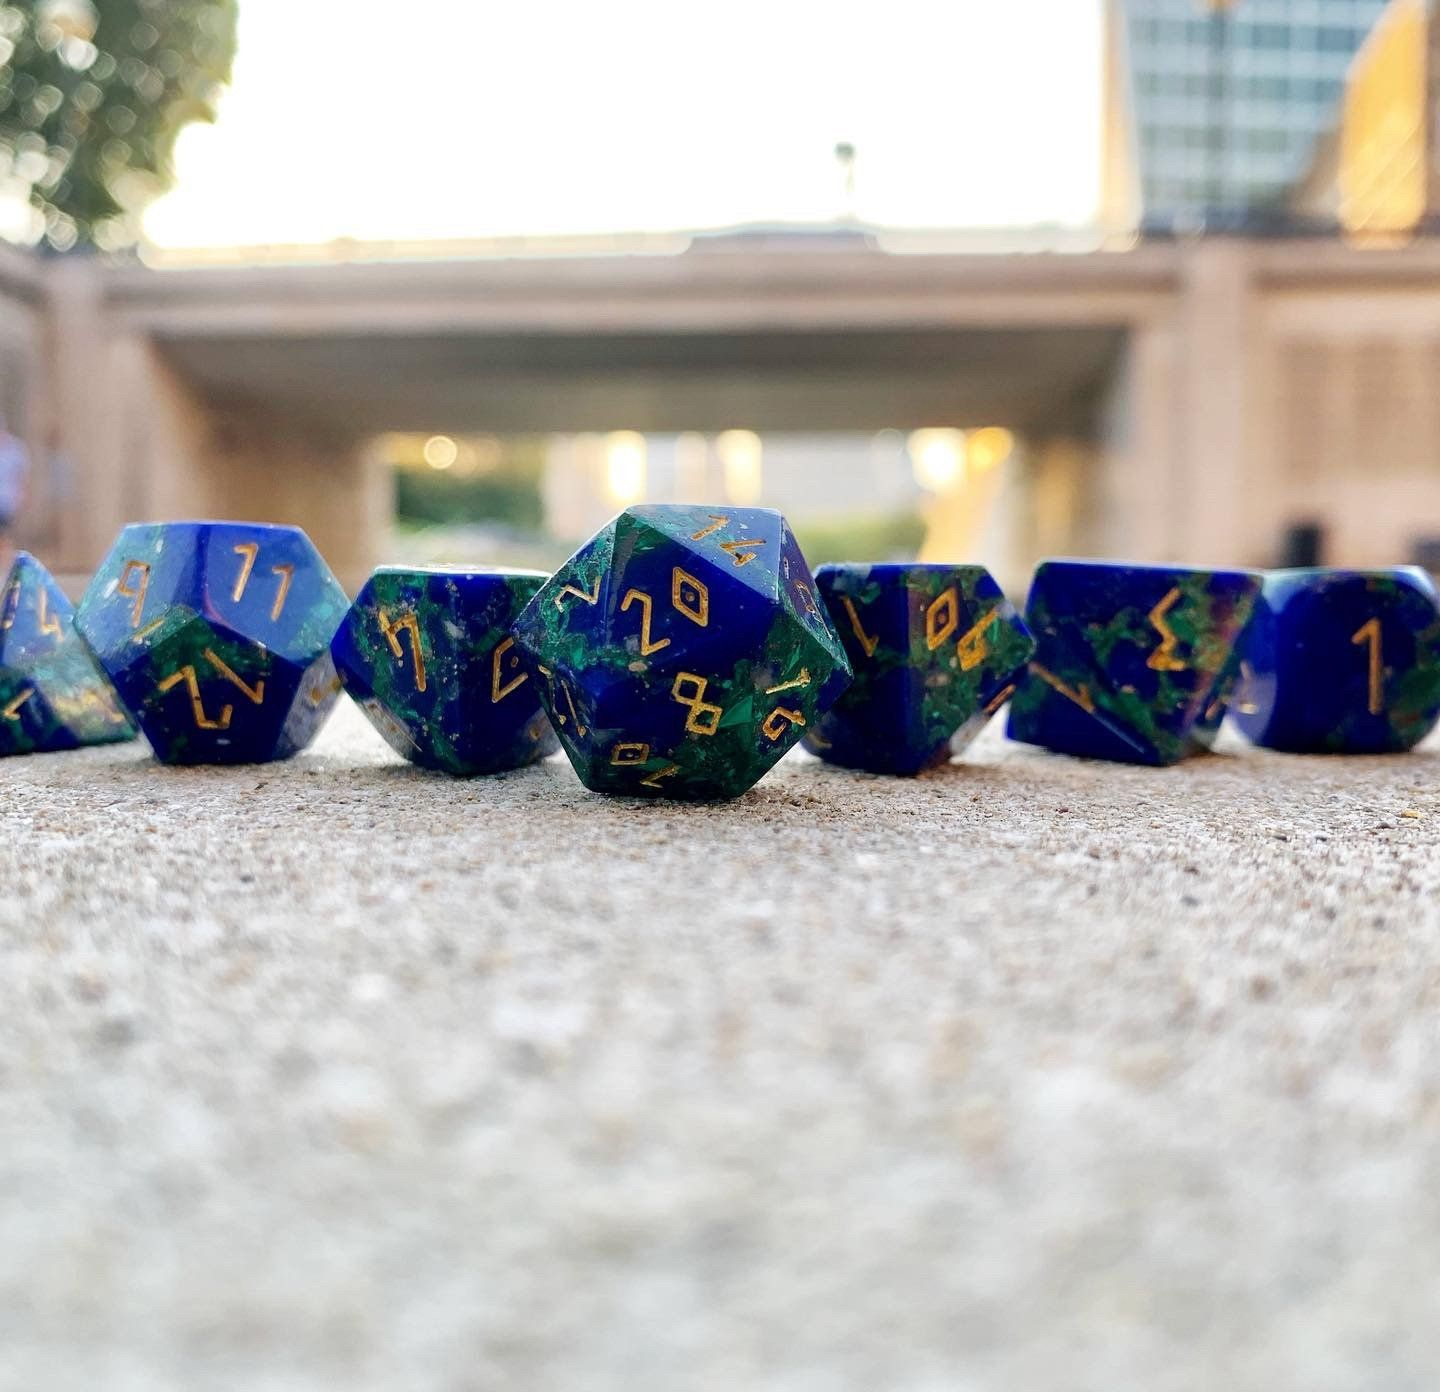 Trustone Cnc Lapis Malachite 7 Piece Rpg Dice Set Gemstone Norse Foundry In 2020 Rpg Malachite Gemstones Along with other accessories such as rpg coins and accessories. pinterest